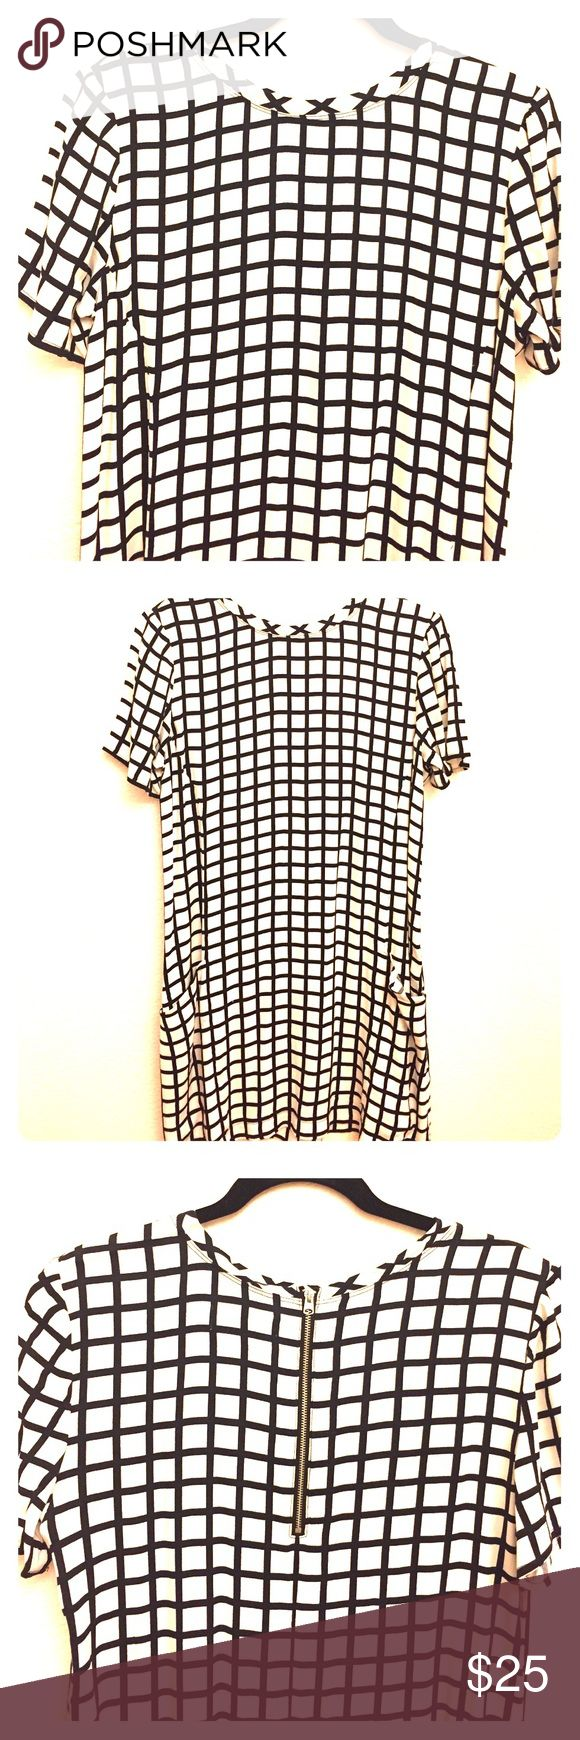 Abercrombie and Fitch Windowpane Shift Dress Shift dress with exposed back zipper.  Armpit to Armpit 20 in. shoulder to hem 34 in. In good condition. Unlined. Abercrombie & Fitch Dresses Mini